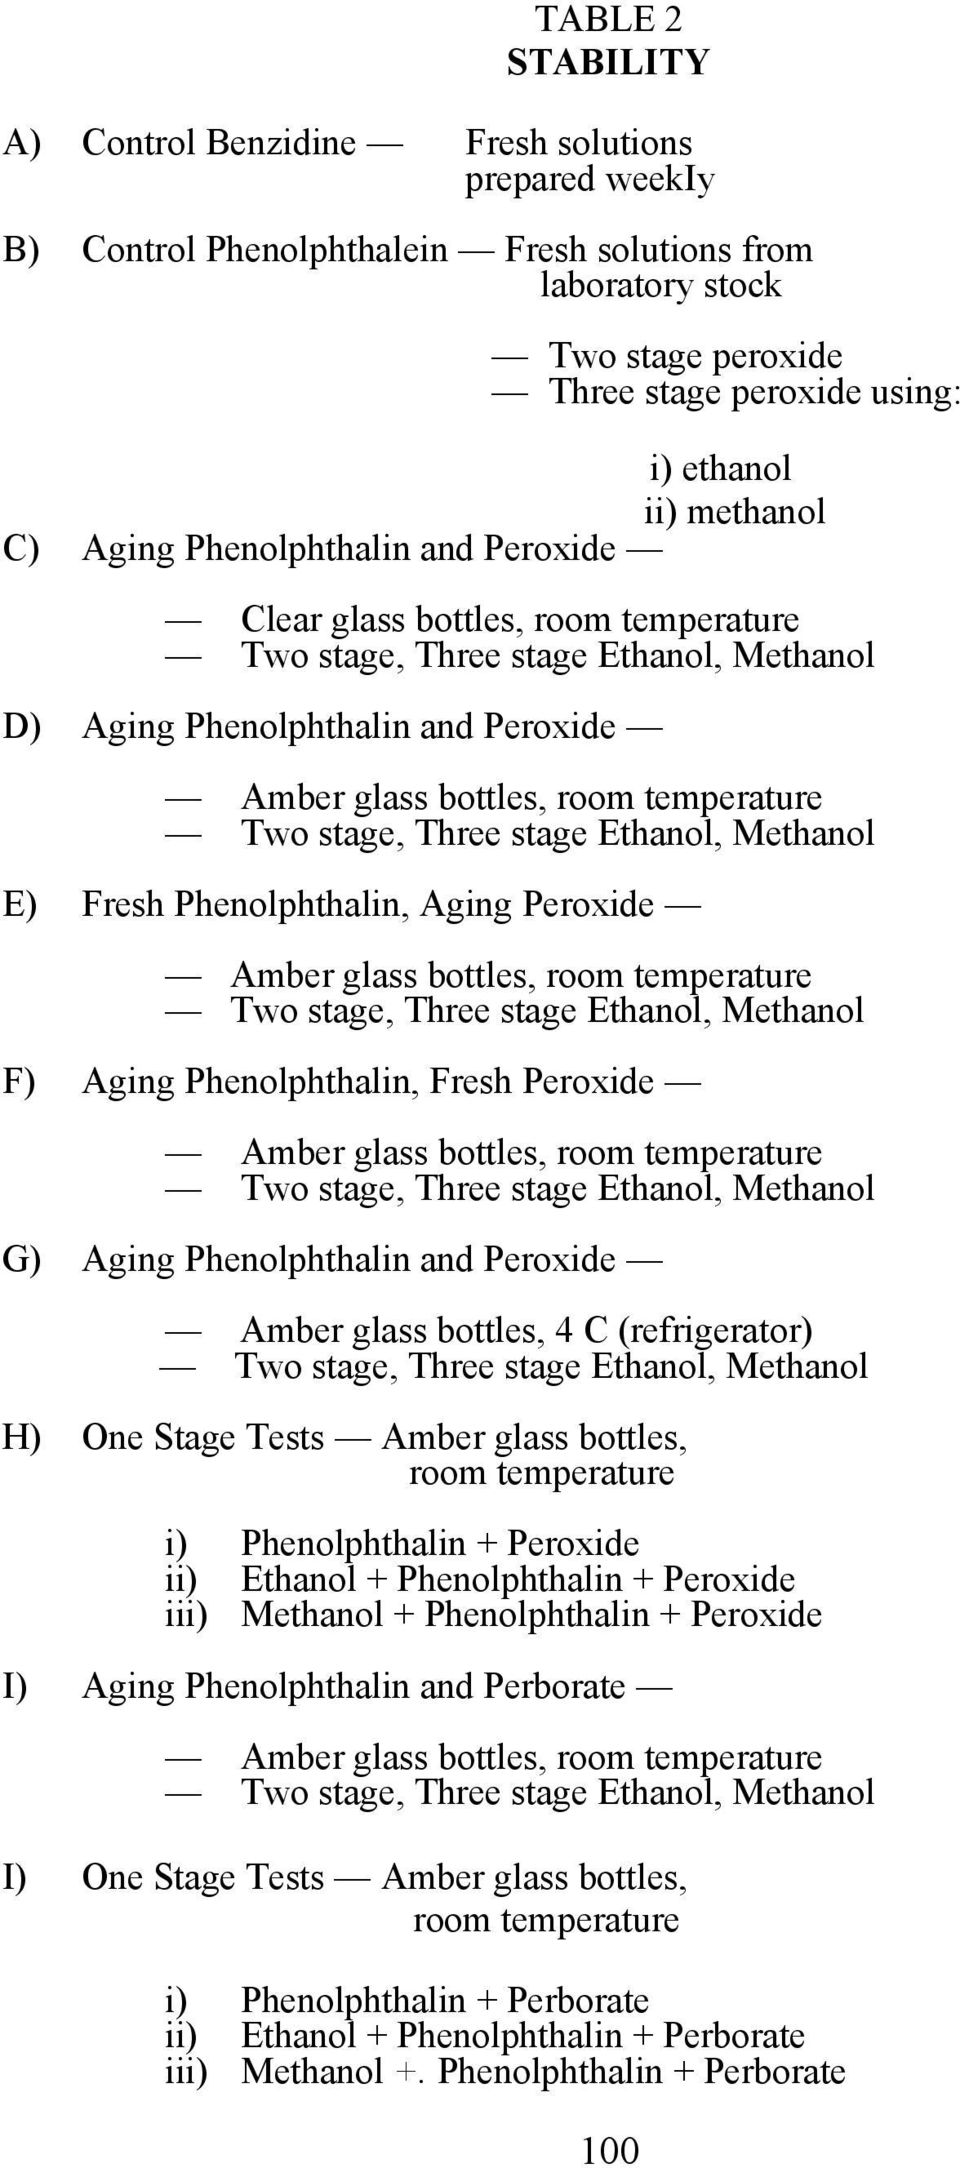 Peroxide G) Aging Phenolphthalin and Peroxide Amber glass bottles, 4 C (refrigerator) H) One Stage Tests Amber glass bottles, room temperature i) Phenolphthalin + Peroxide ii) Ethanol +